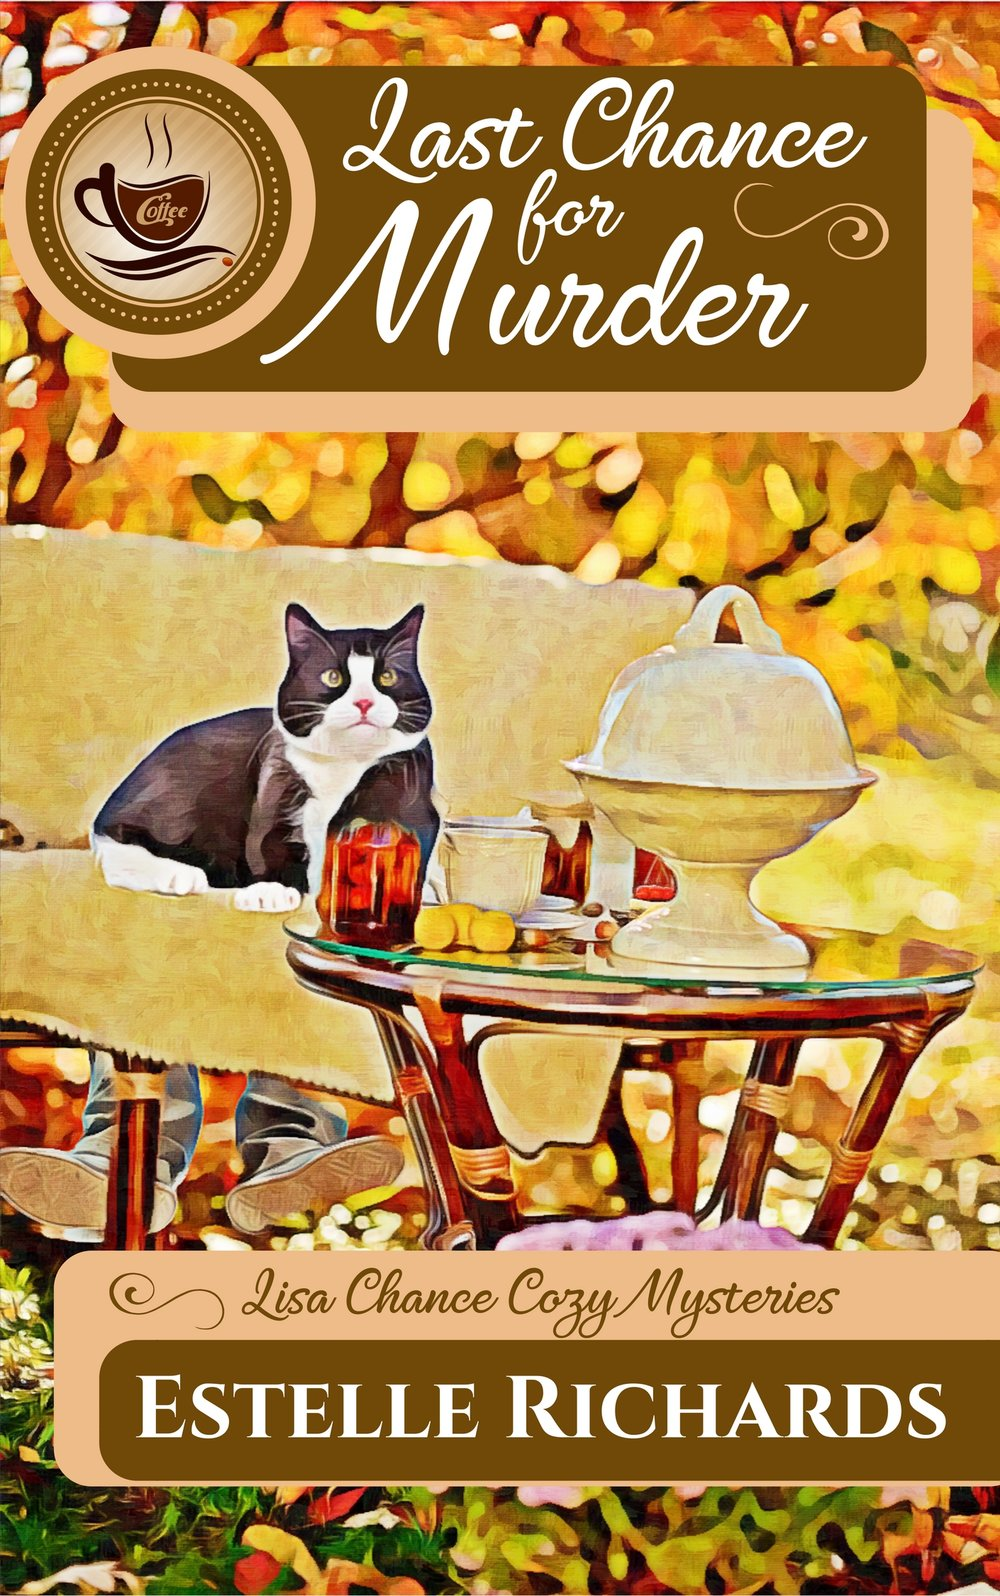 Last Chance for Murder - Book 1 of the Lisa Chance Cozy Mystery seriesOne last chance to get things right. Too old for Hollywood at age 29, Lisa Chance leaves her failed acting career and a cheating boyfriend in LA and goes home to Moss Creek, Arizona. The Folly, a stately 1870s mansion in the middle of her hometown, has always drawn Lisa like a magnet. She thought she was done with that place, but now she has the chance to turn it into the coffee shop of her dreams. But when a dead body turns up on the property, she's the prime suspect in the murder. Can Lisa figure out whodunit, or will she lose her last chance at happiness?